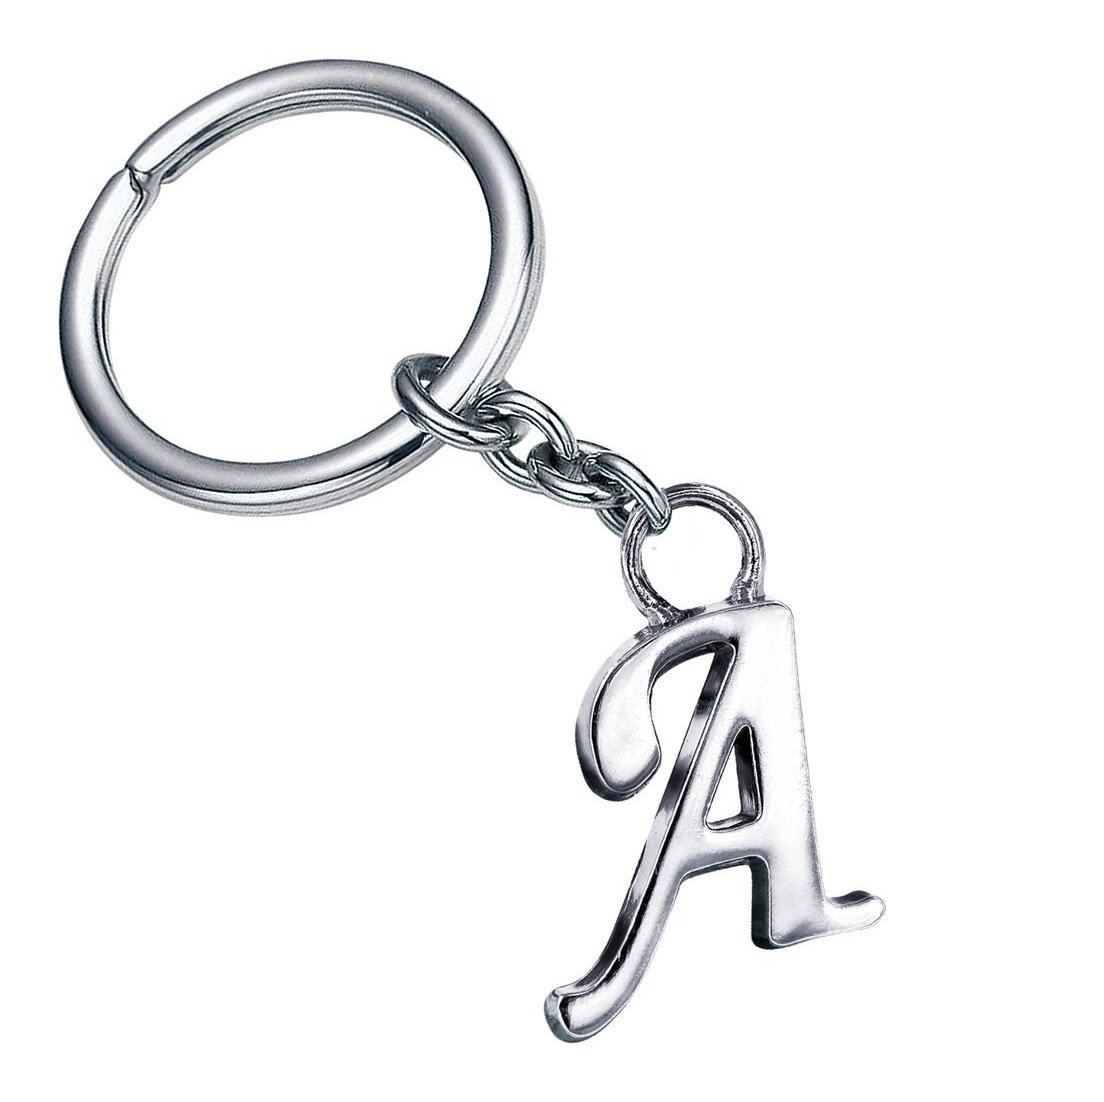 GCT Alphabet Letter A Metal Keychain for Car Bike Men Women Keyring  (Silver)  Amazon.in  Bags 4357a51a5c